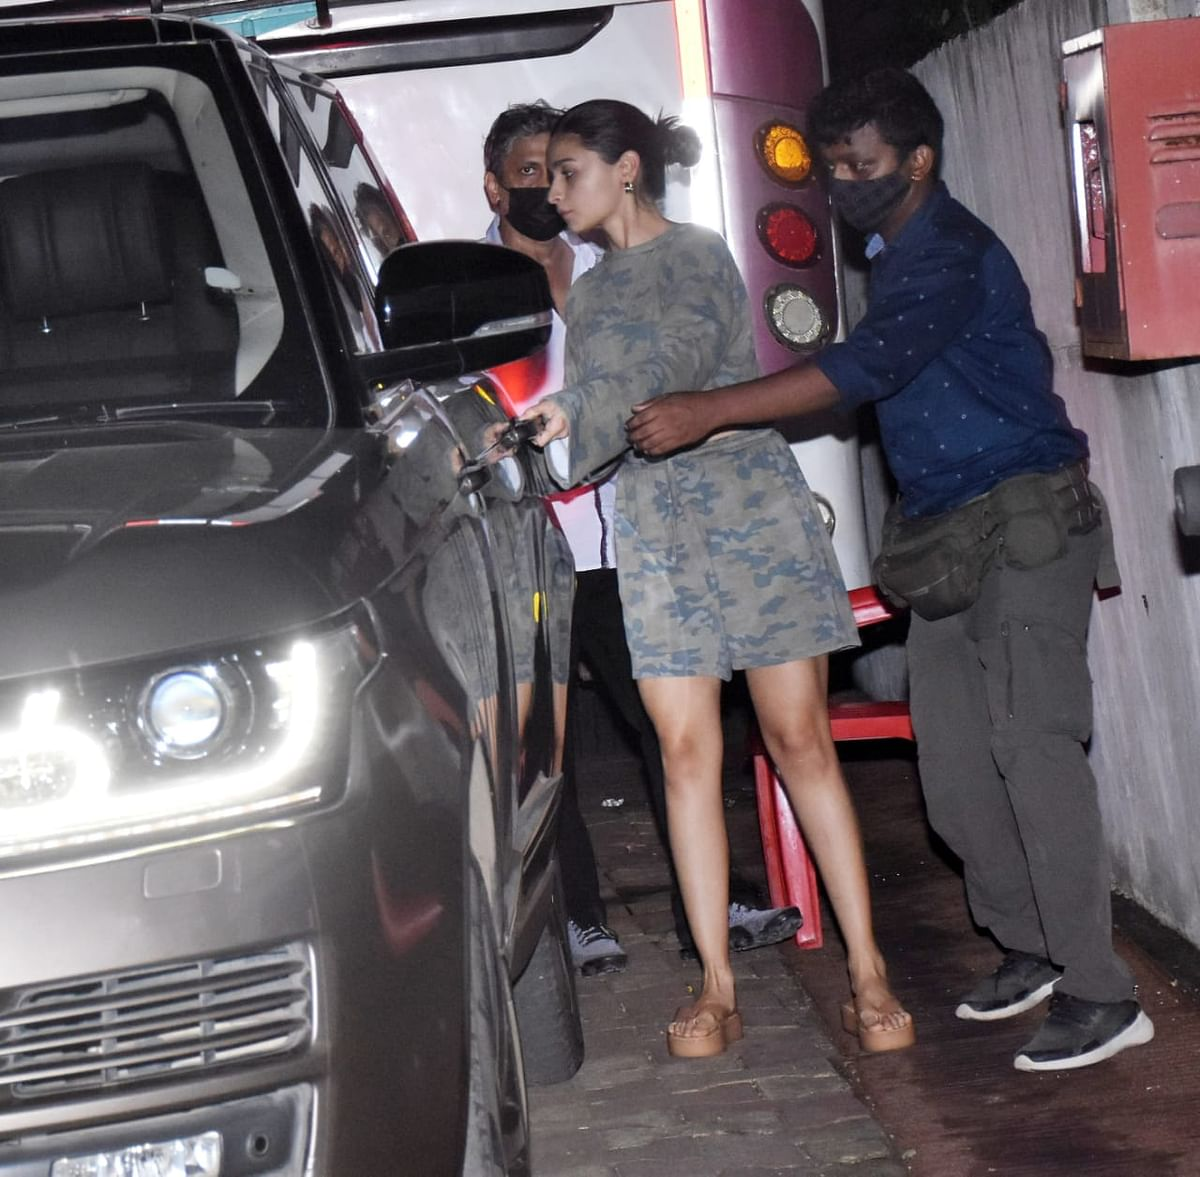 In Pics: Alia Bhatt, Kartik Aaryan, Shahid Kapoor and other Bollywood stars spotted by paps in Mumbai